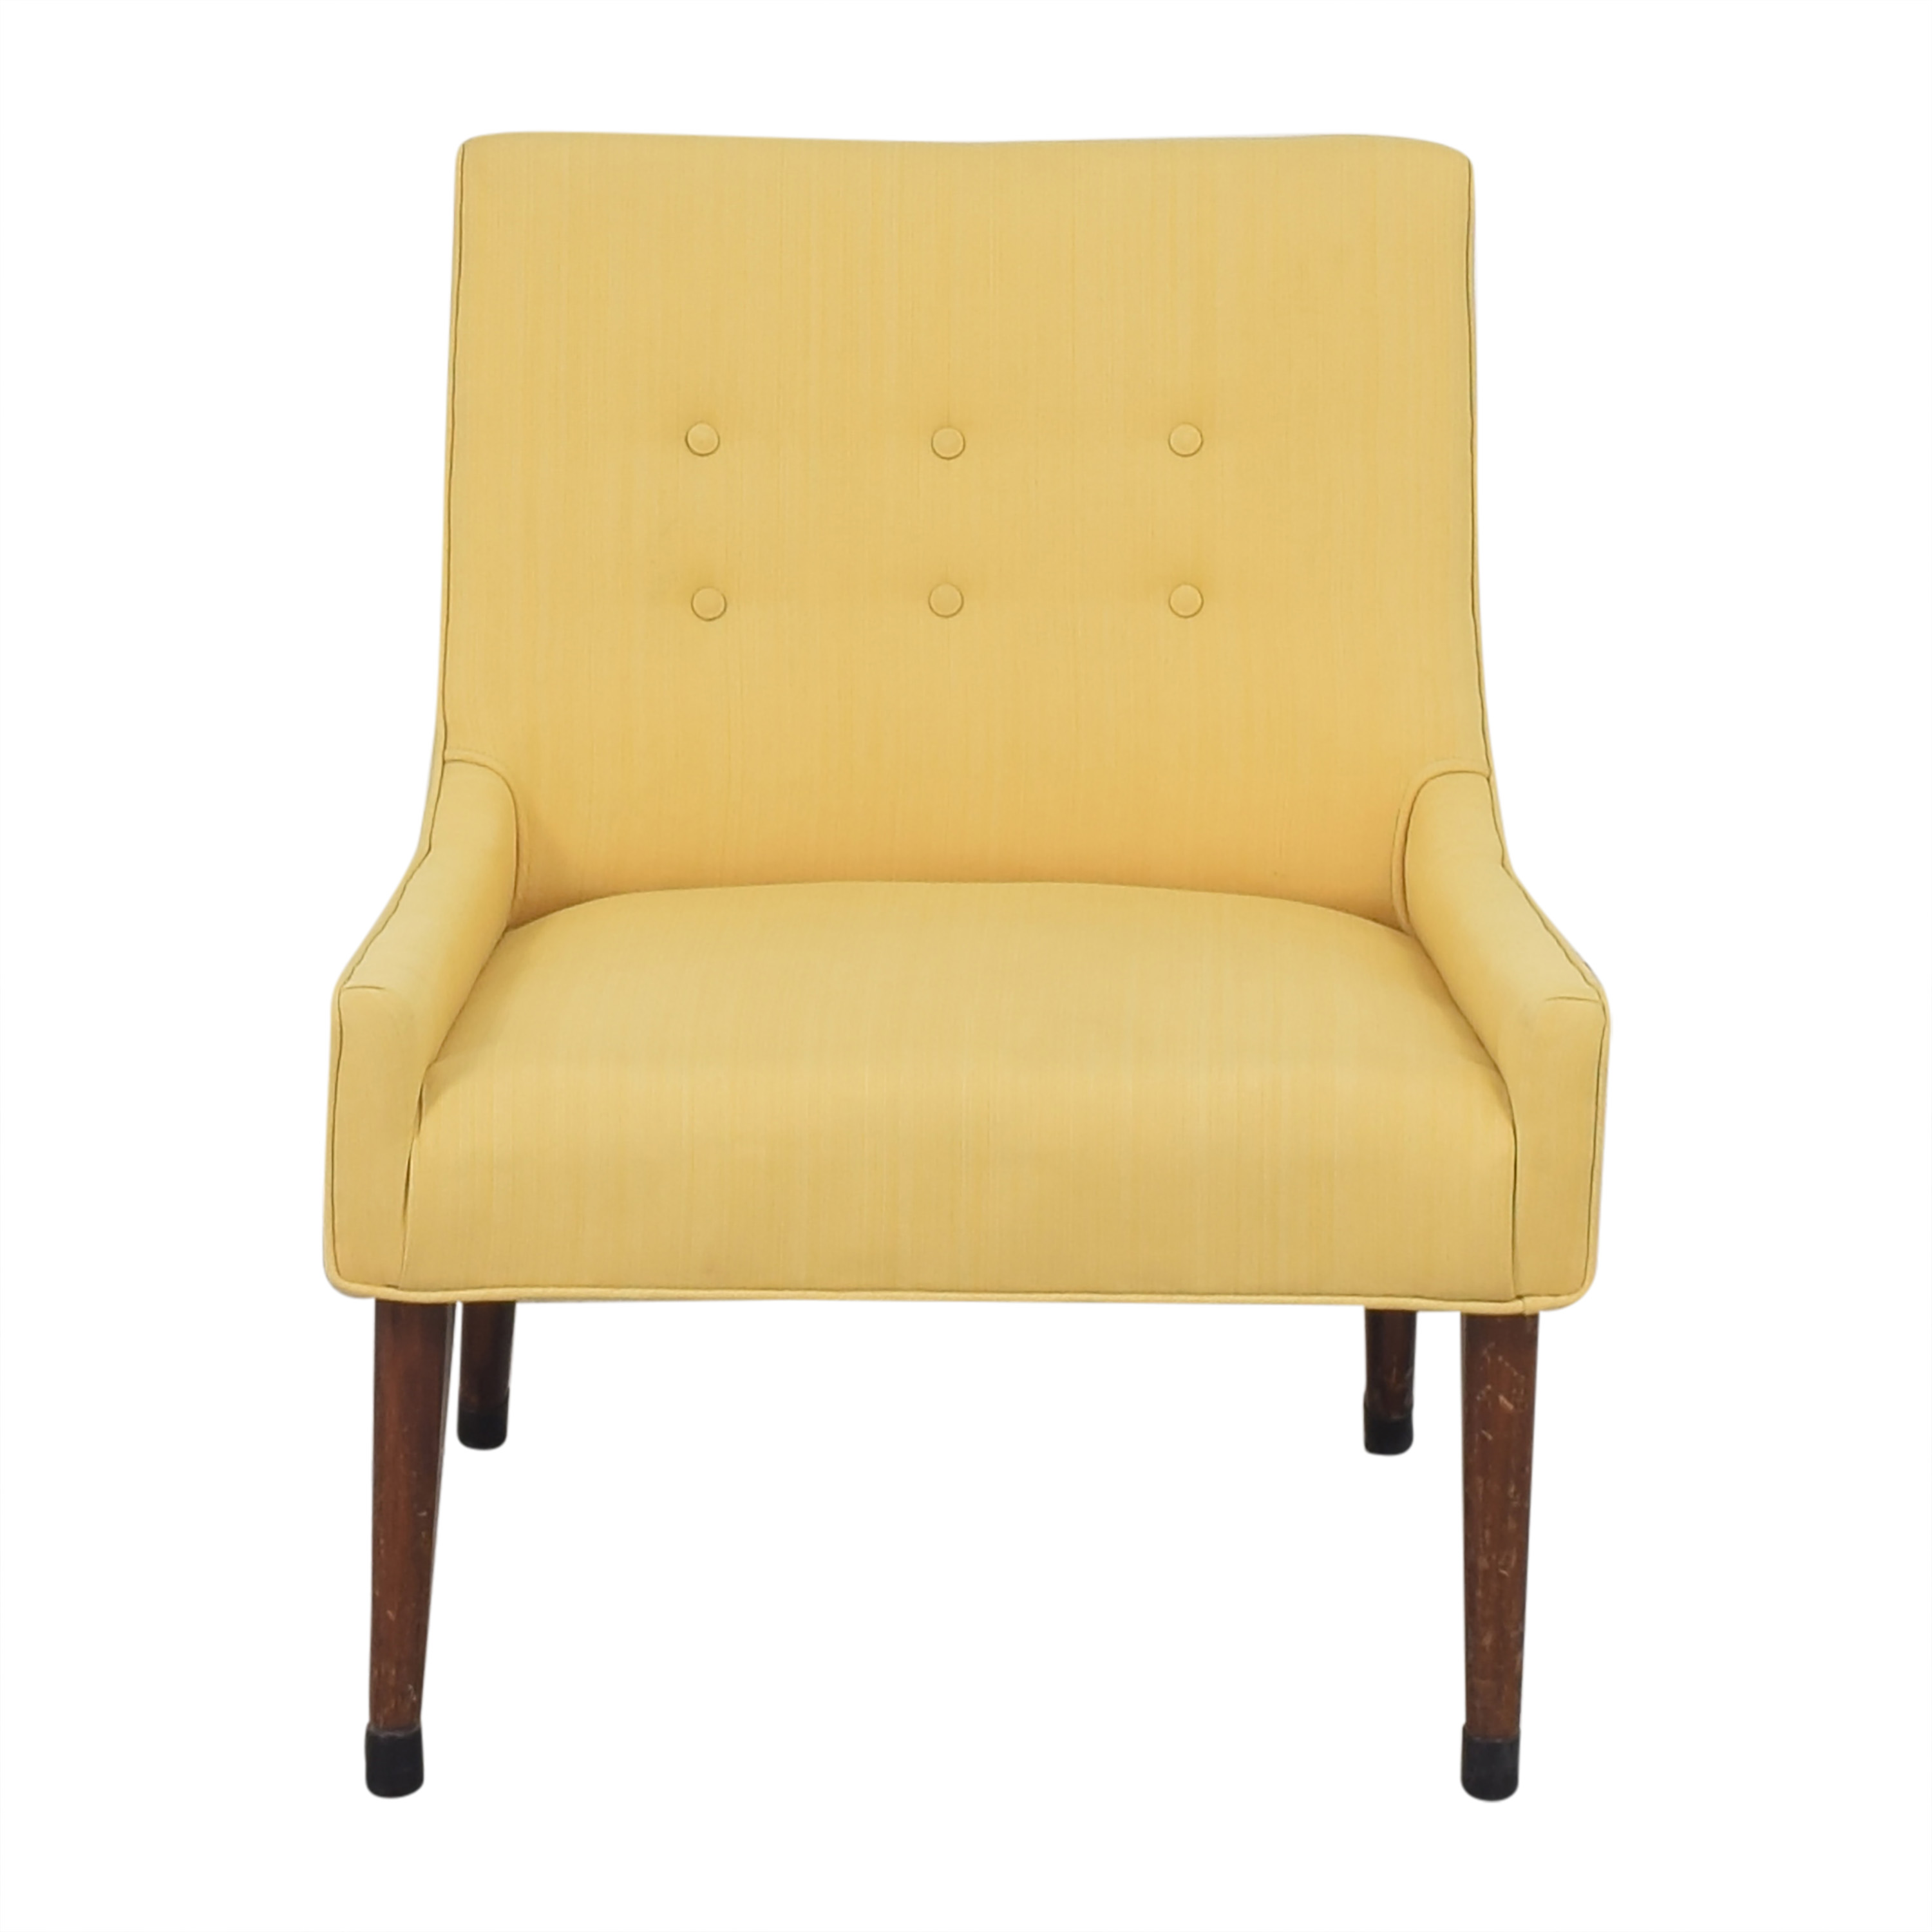 Mid-Century Modern Accent Chair on sale